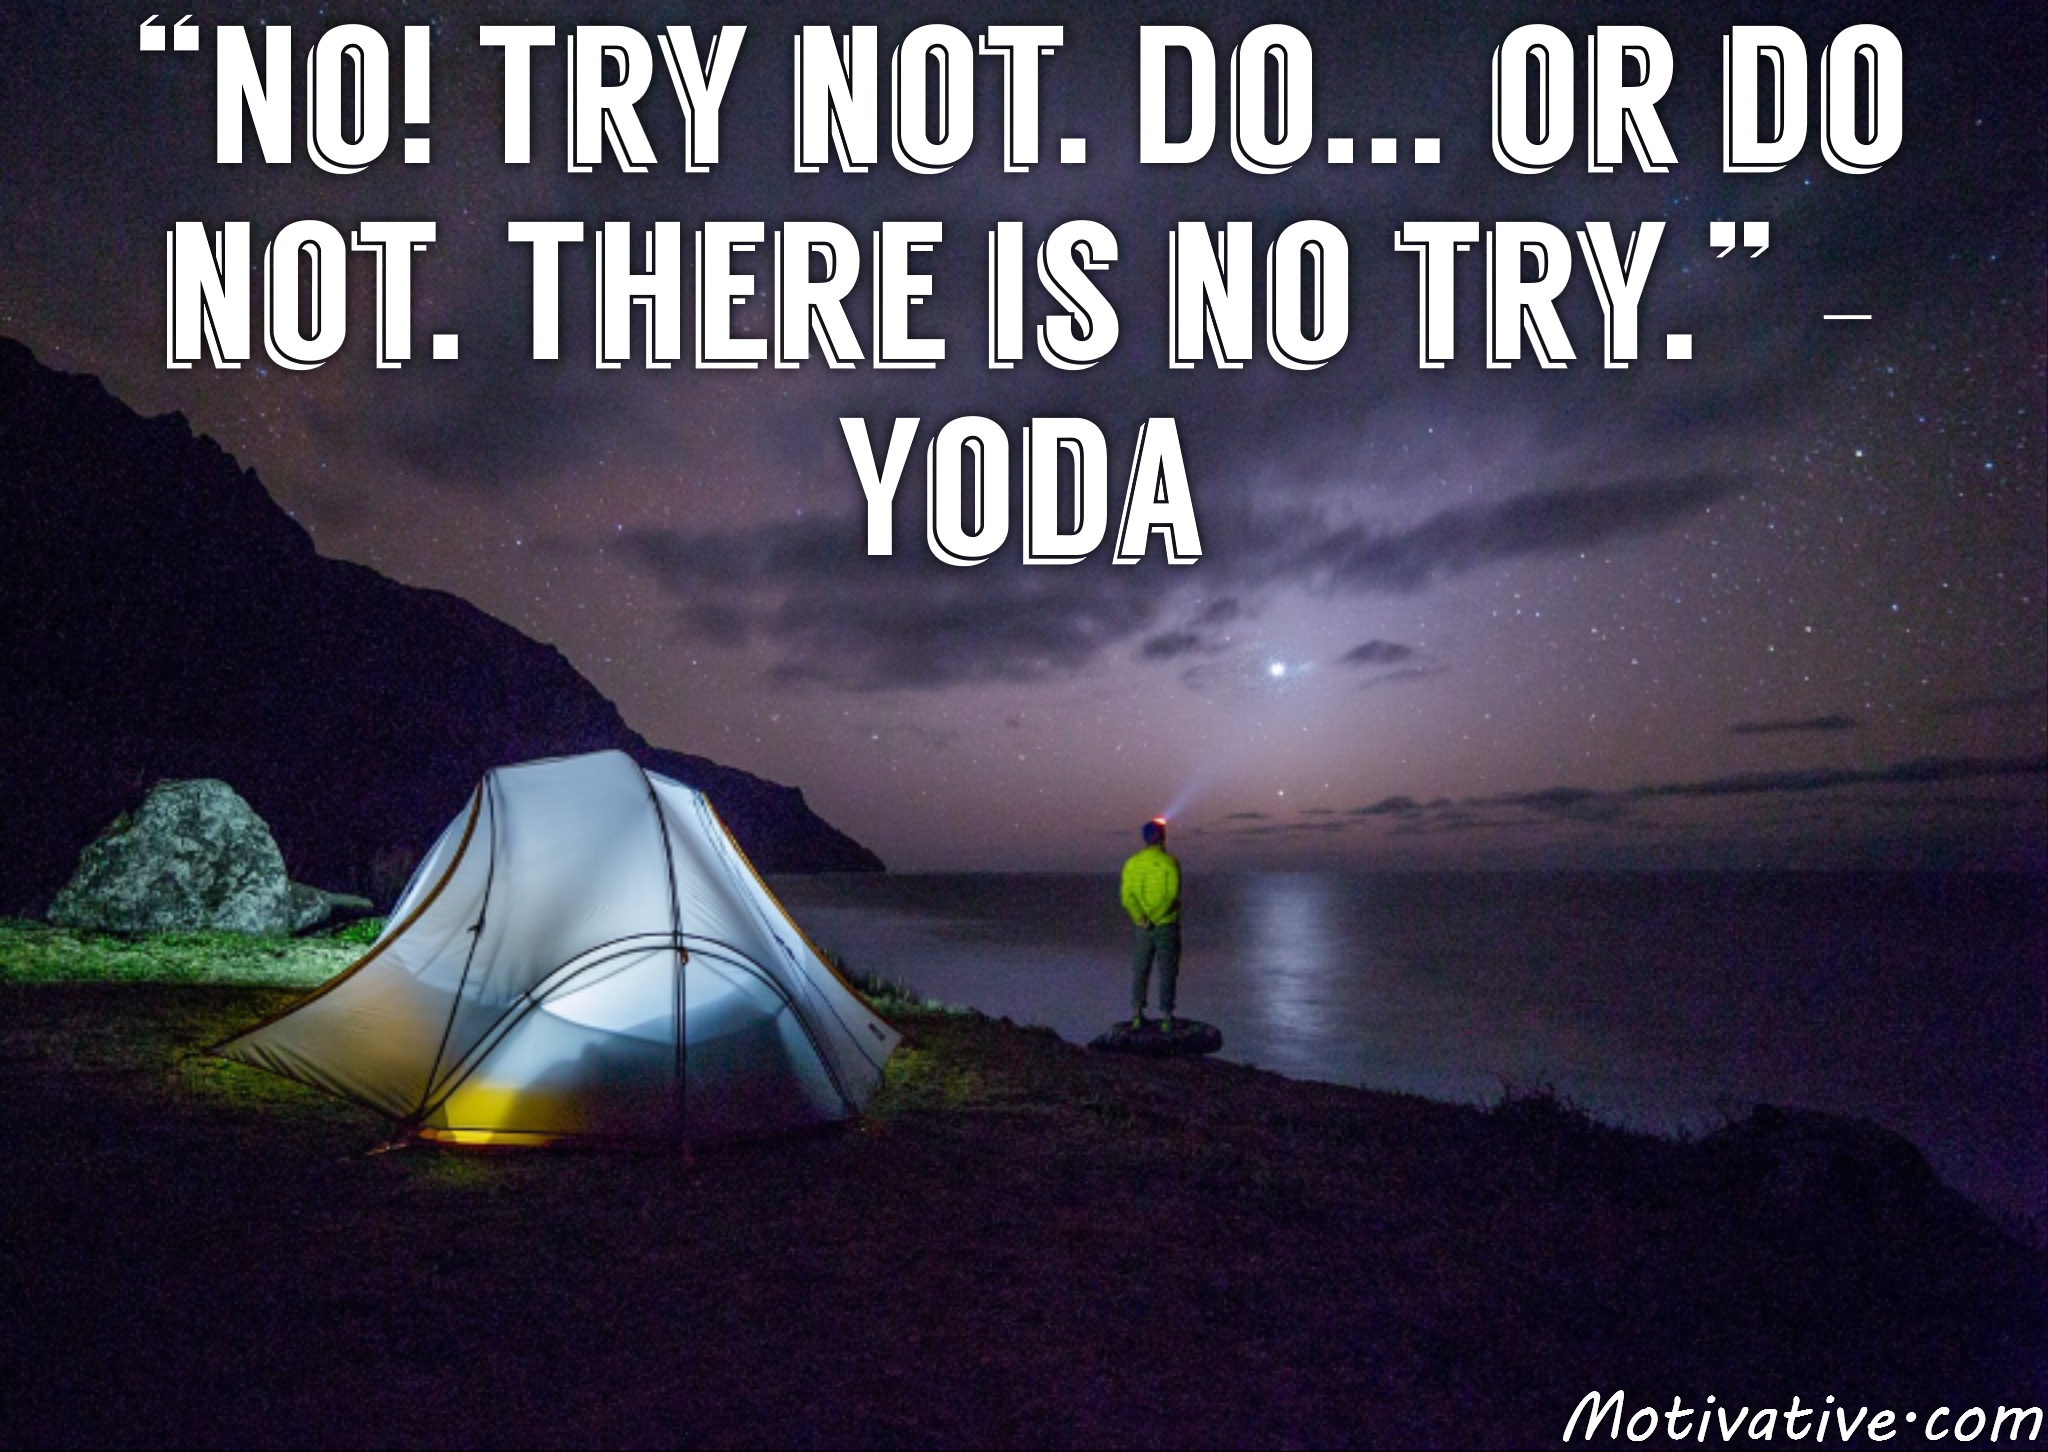 No! Try not. Do… or do not. There is no try. – Yoda